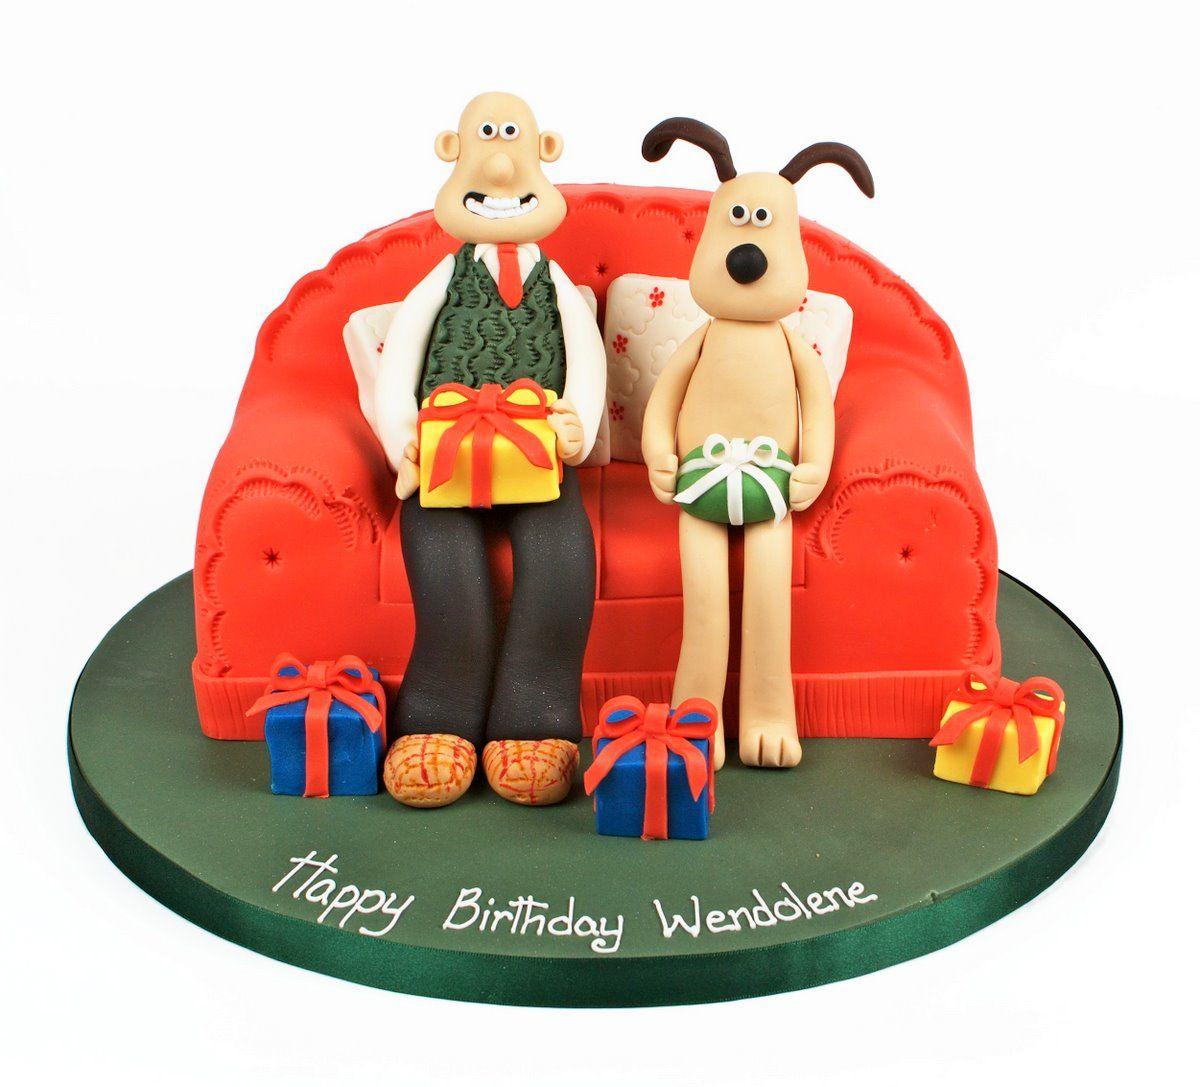 wallace and gromit wallace and gromit birthday cake